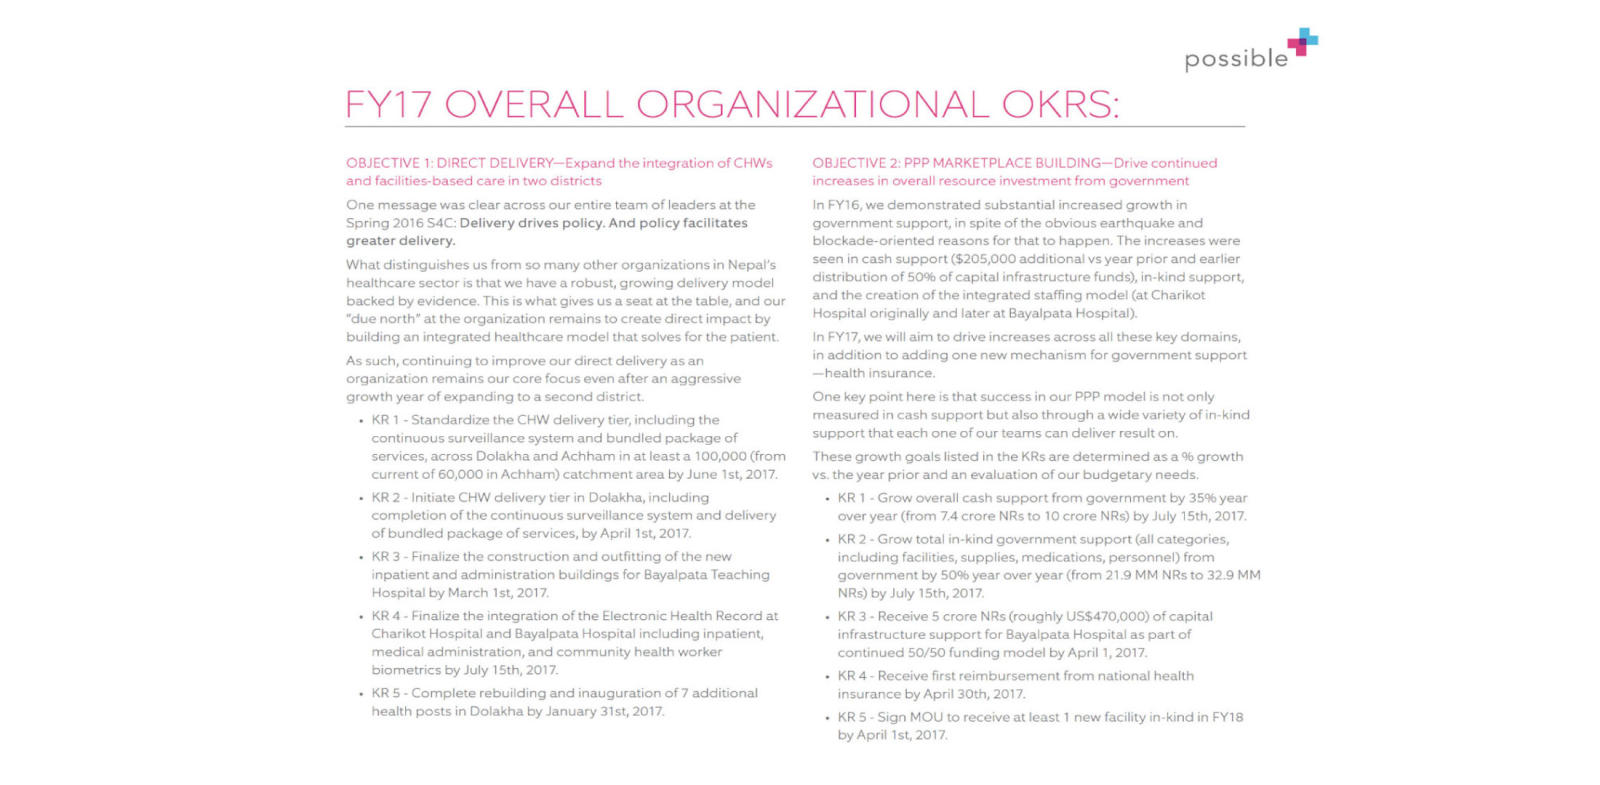 possible health's organizational OKRs